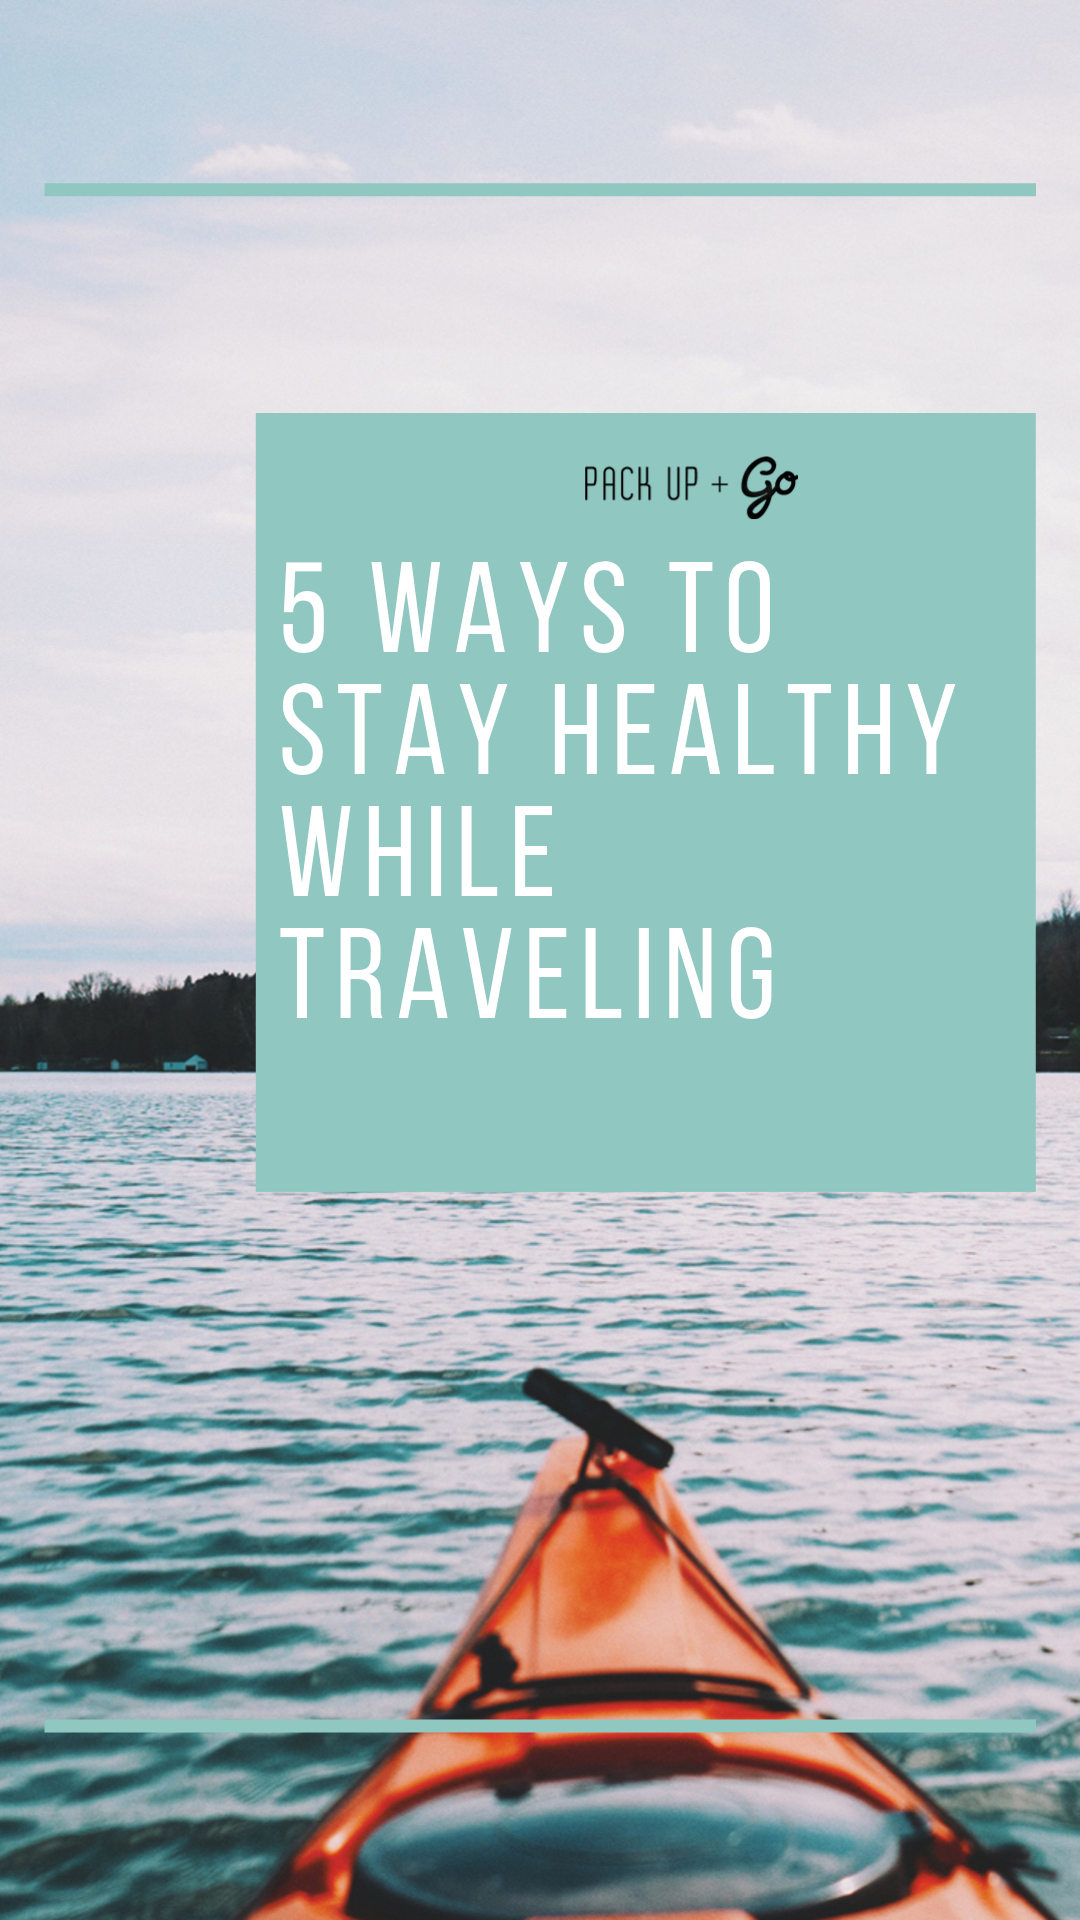 5 ways to stay healthy while traveling.png